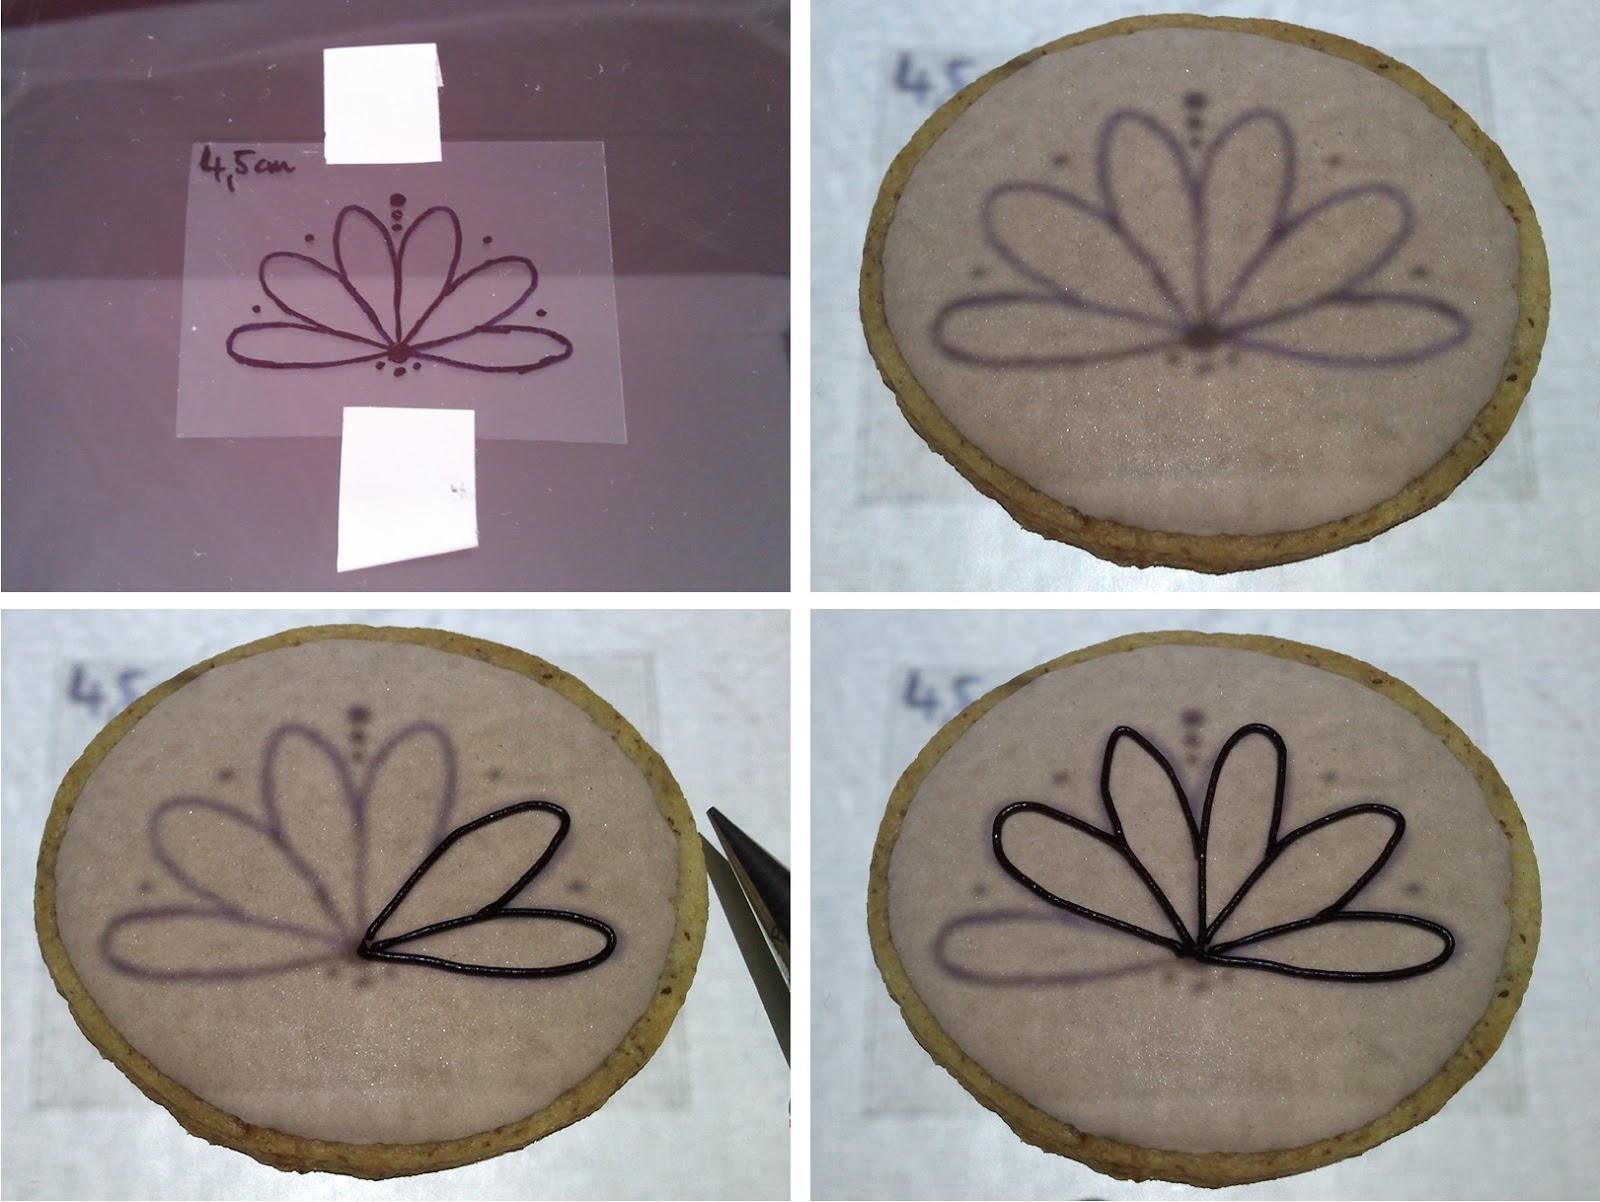 Projecting and tracing the image on a cookie